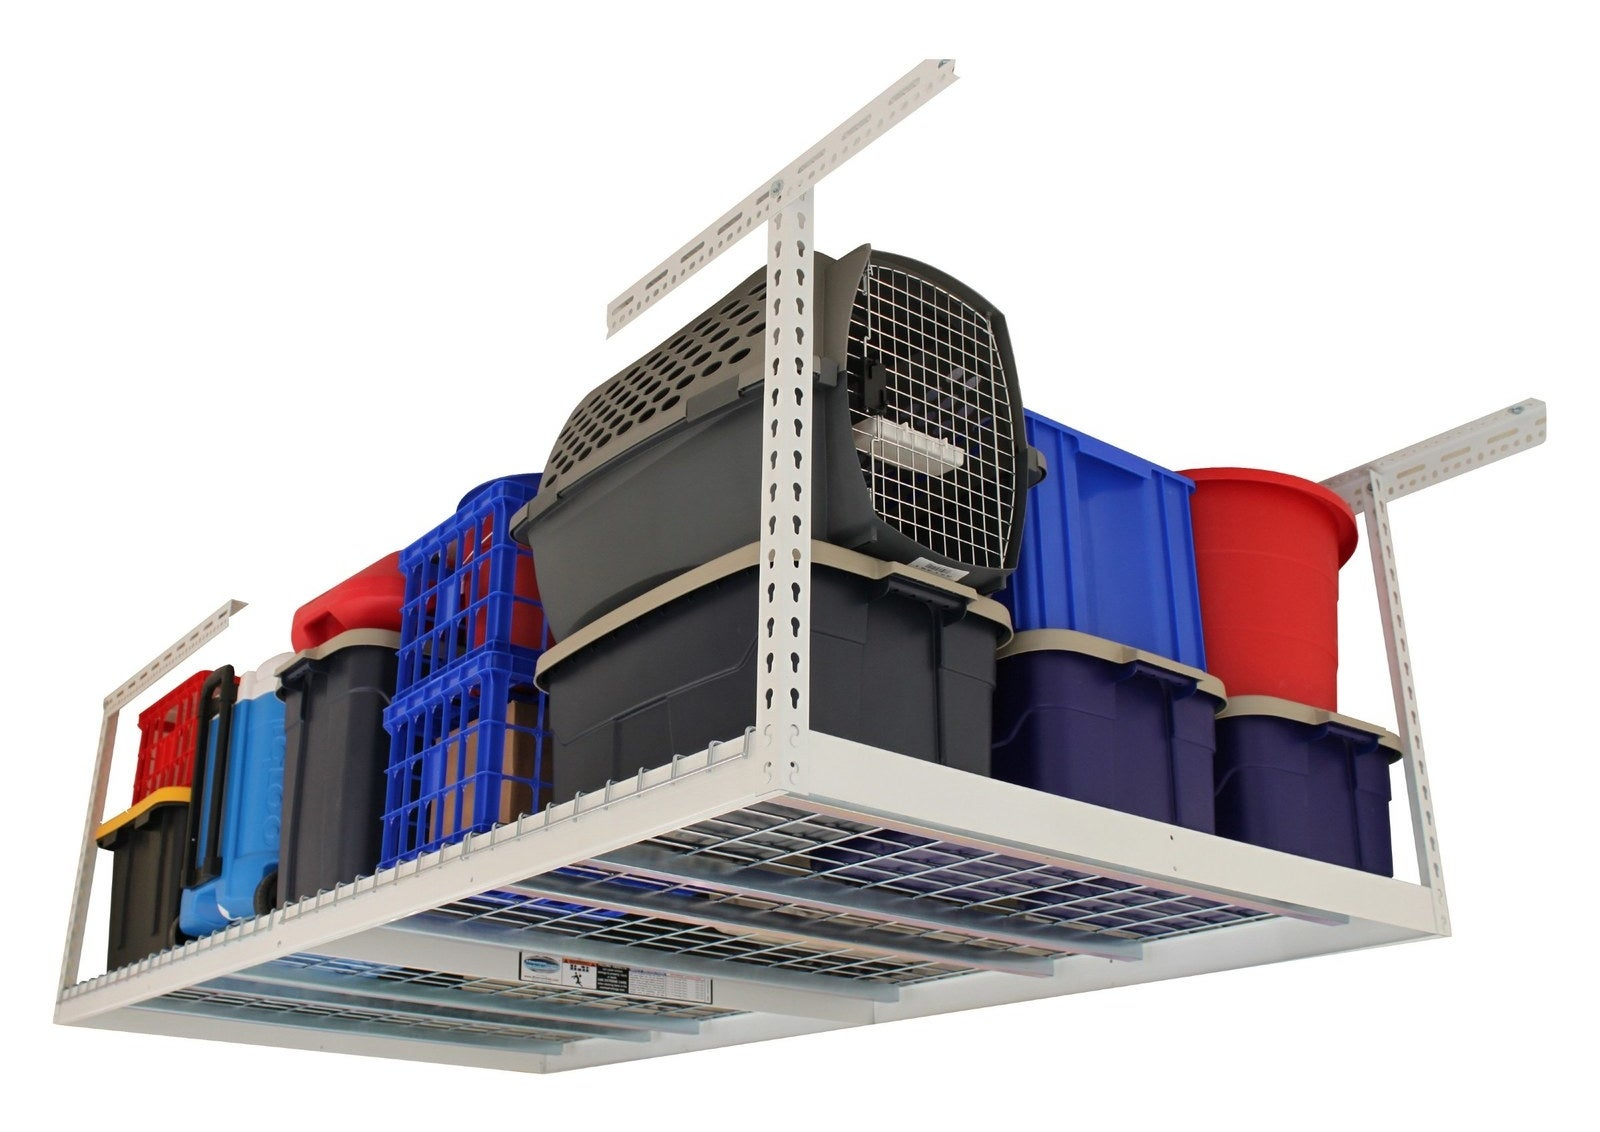 This sturdy overhead storage system designed to fit snugly above a raised garage door will get goods up off the floor.